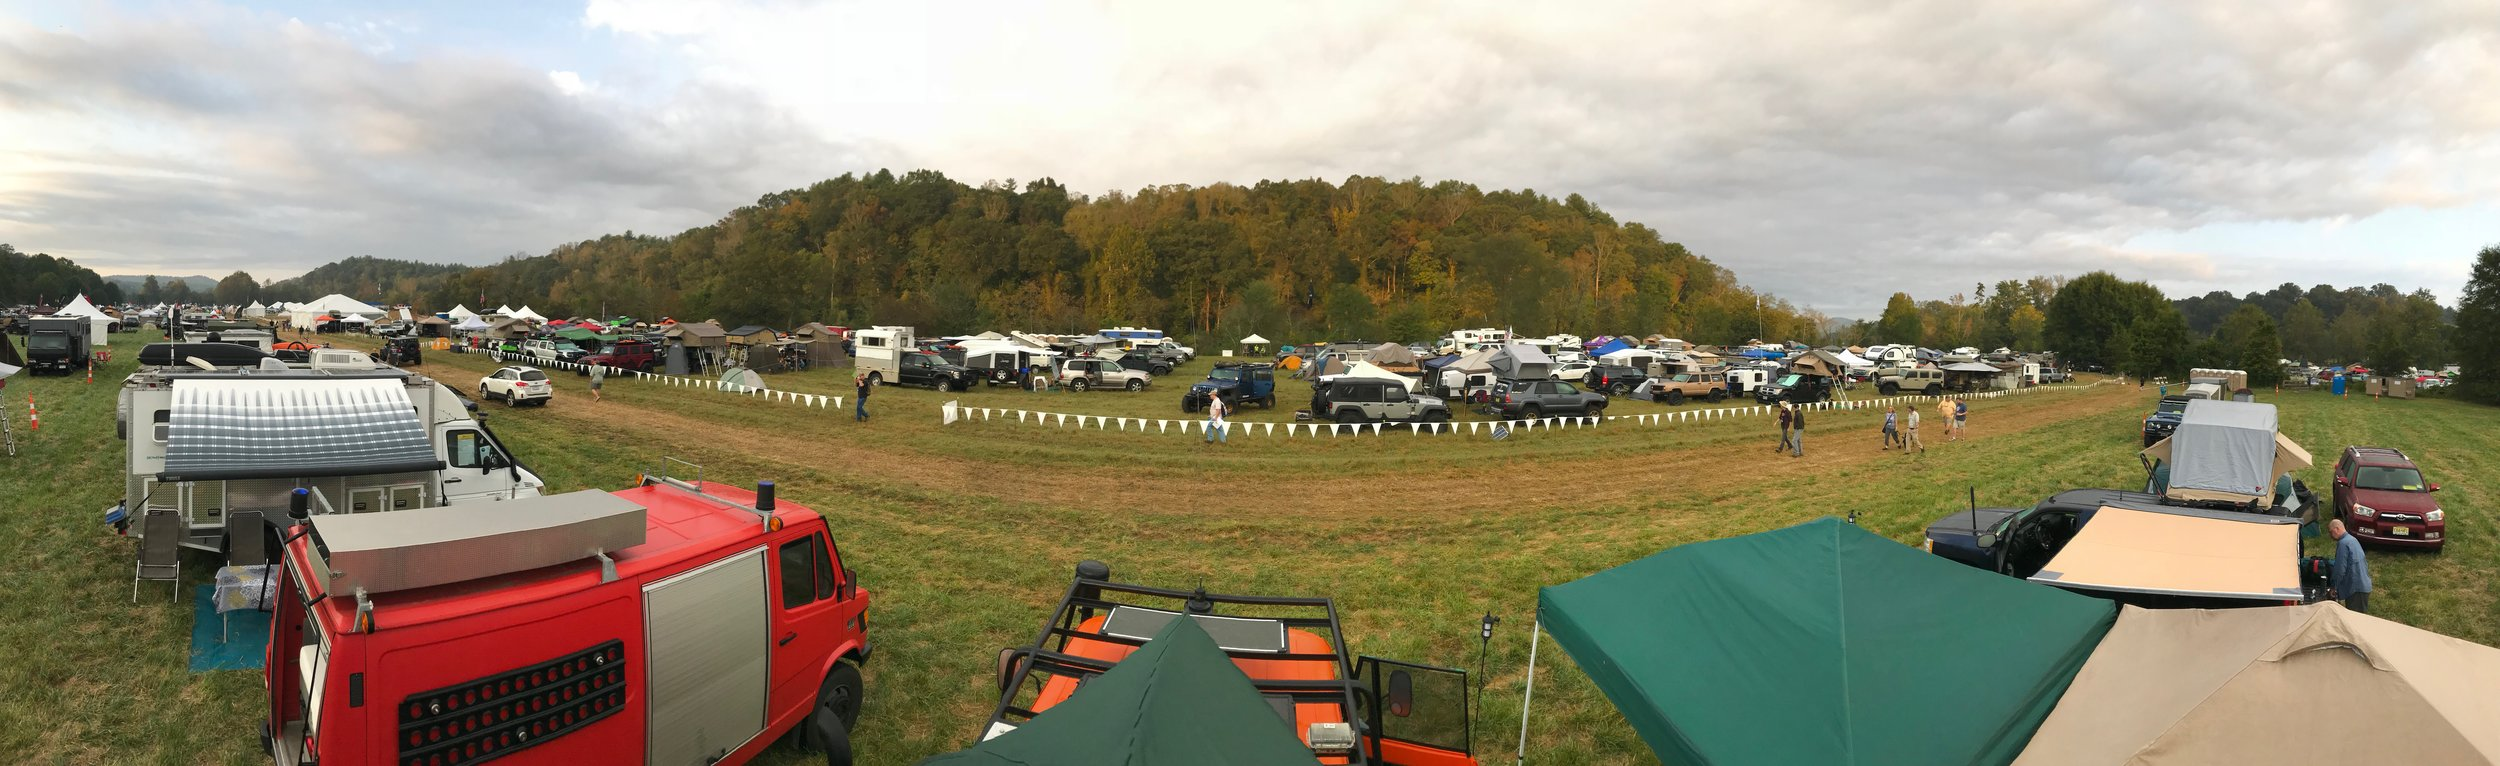 overland expo panoramic